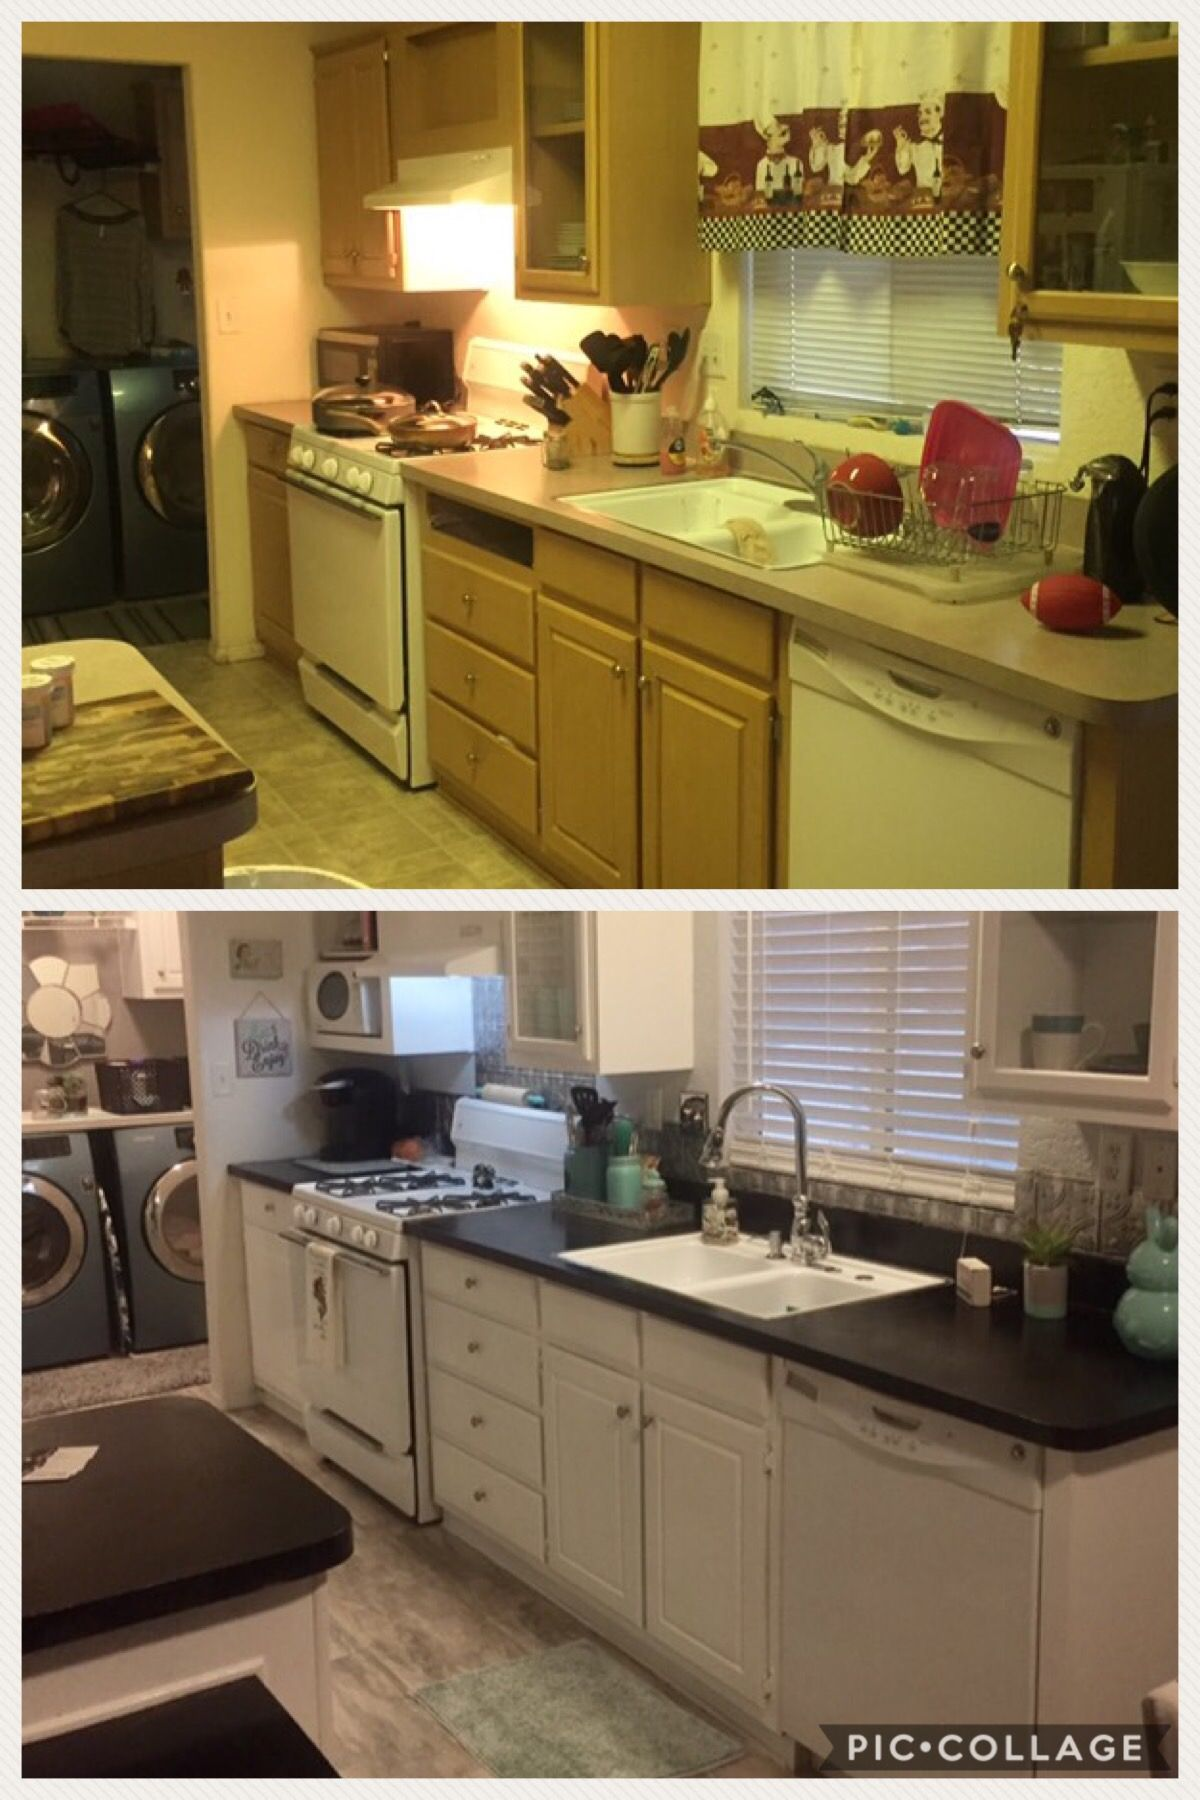 before and after of my Mobile home kitchen make over ... on mobile home kitchen decor, foursquare kitchen remodel before and after, 1960s kitchen remodel before and after, small home remodeling before and after, kitchen redos before and after, condo kitchen remodels before and after, a frame kitchen before and after, white kitchen cabinets remodel before and after, mobile home kitchen design, kitchen redesign before and after, mobile home kitchen lighting, small kitchen remodel before and after, cheap kitchen remodel before and after, kitchen makeovers before and after, kitchen renovation before and after, diy kitchen before and after,